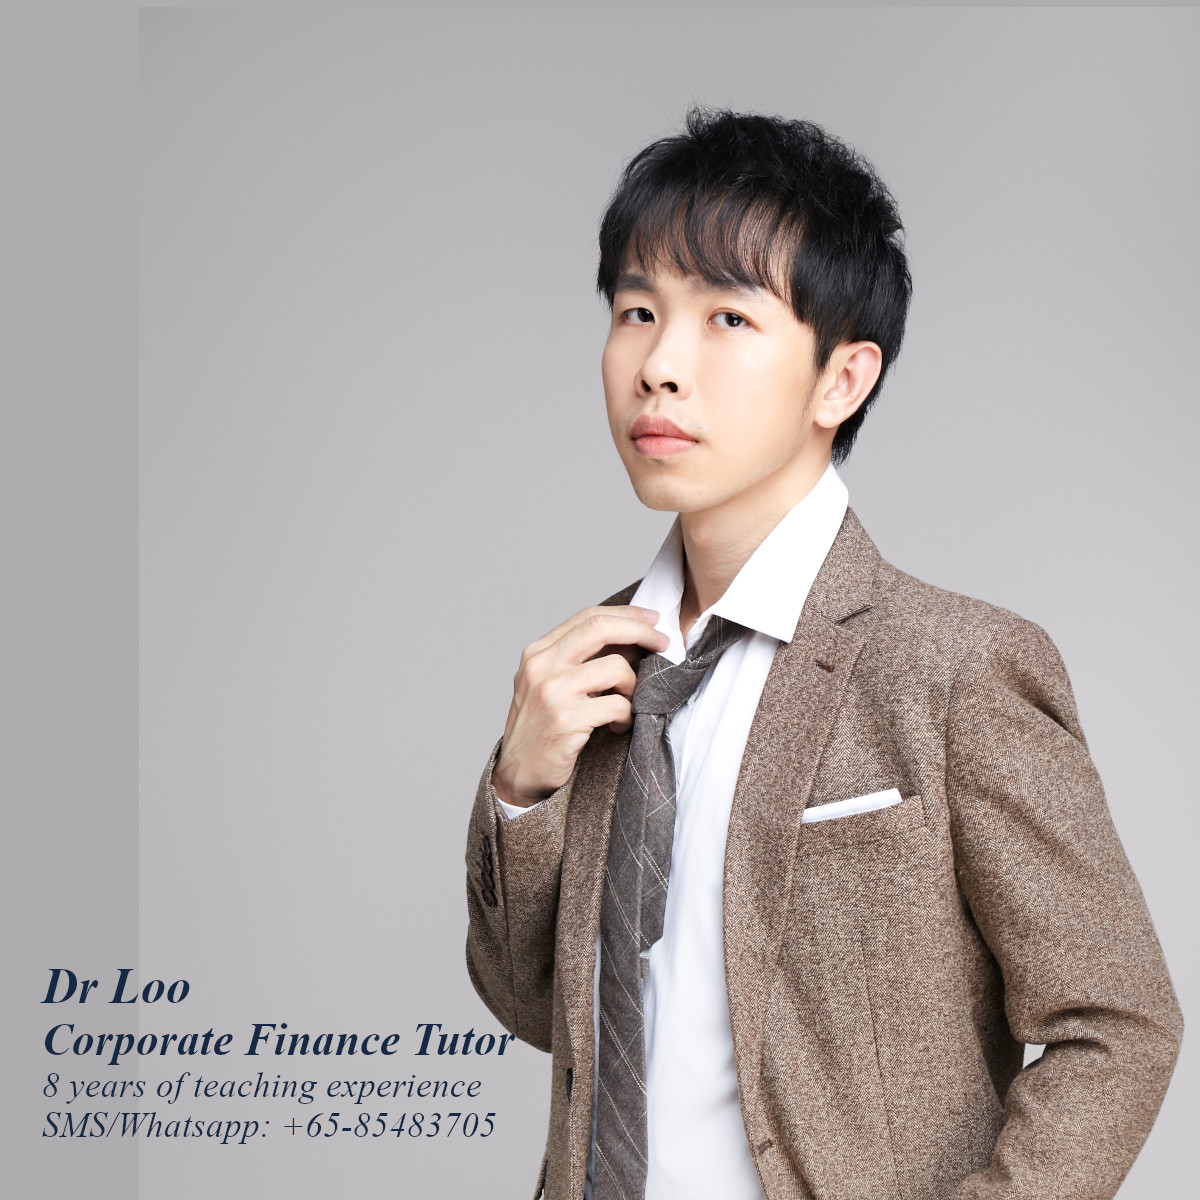 Corporate Finance Tutor in Singapore